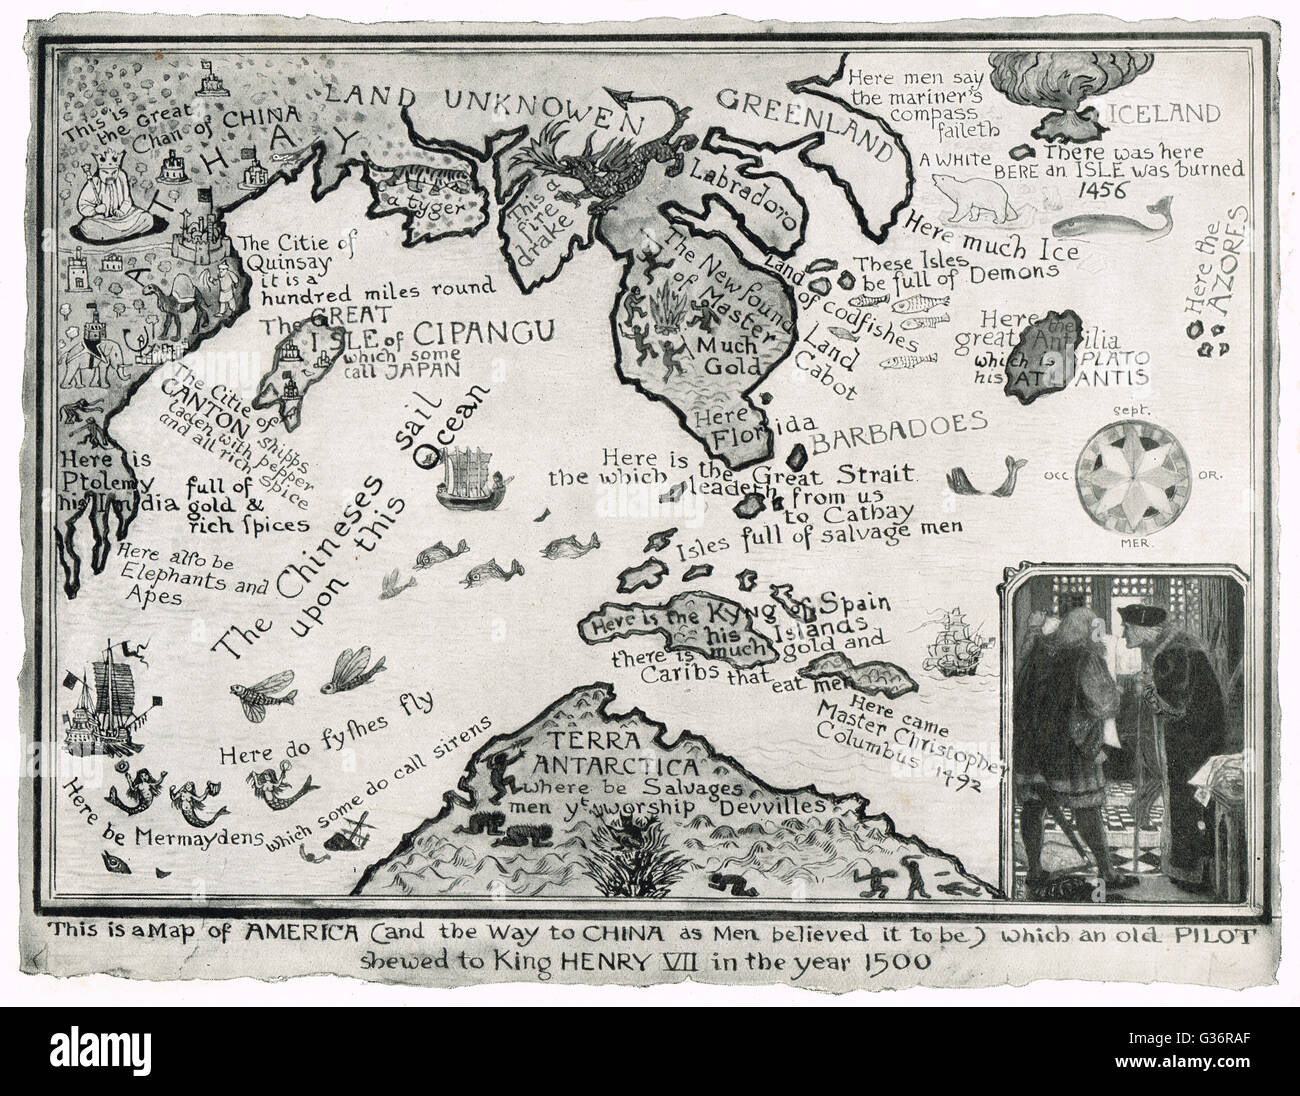 Erroneous Map of America & the way to China (as men believed it to be) shown to Henry VII in 1500 - Stock Image